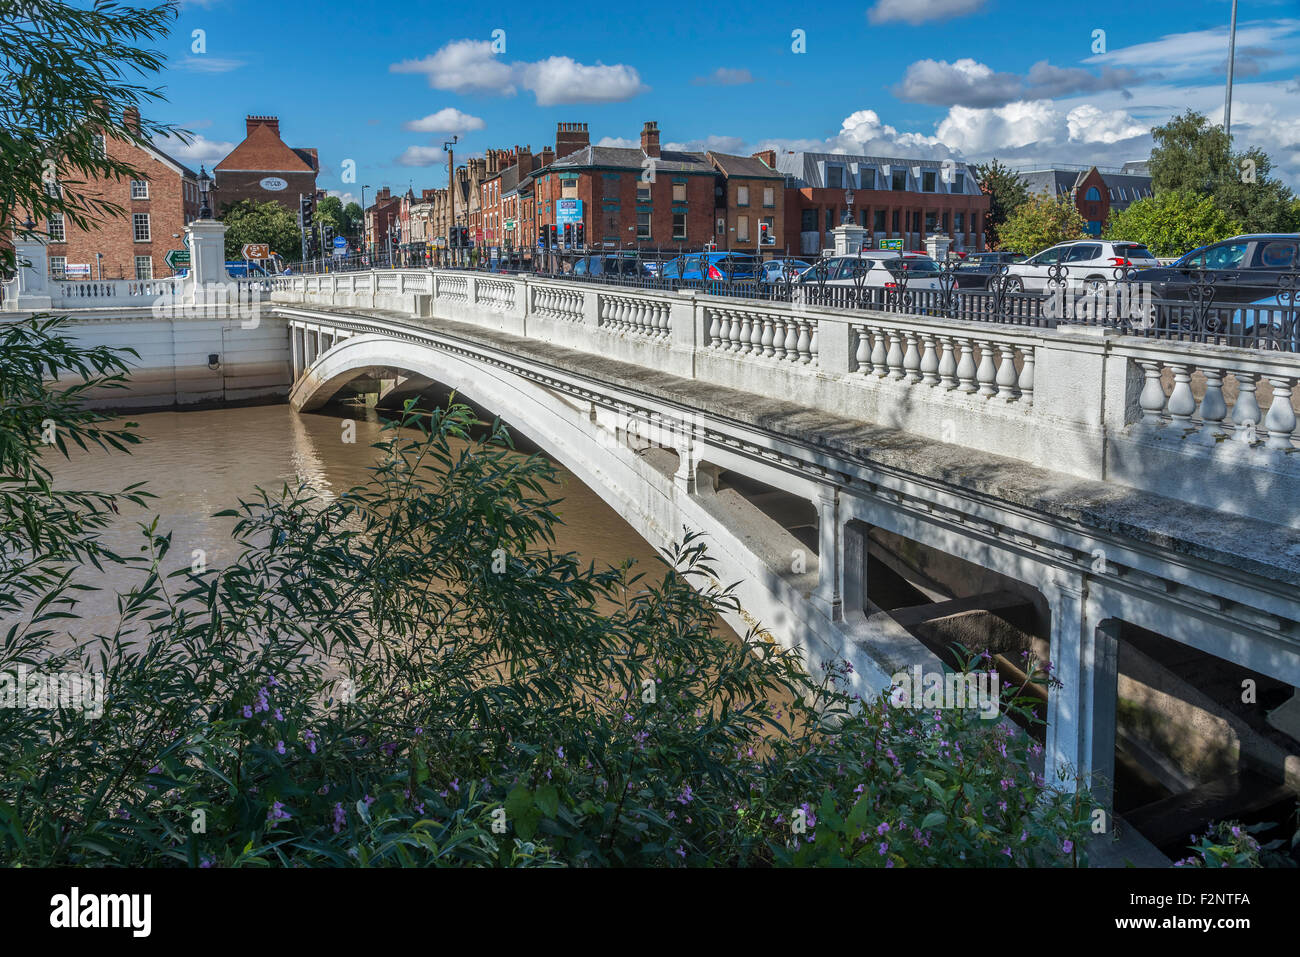 The bridge over the river Mersey at Bridge foot in Warrington. Cheshire North West England. - Stock Image